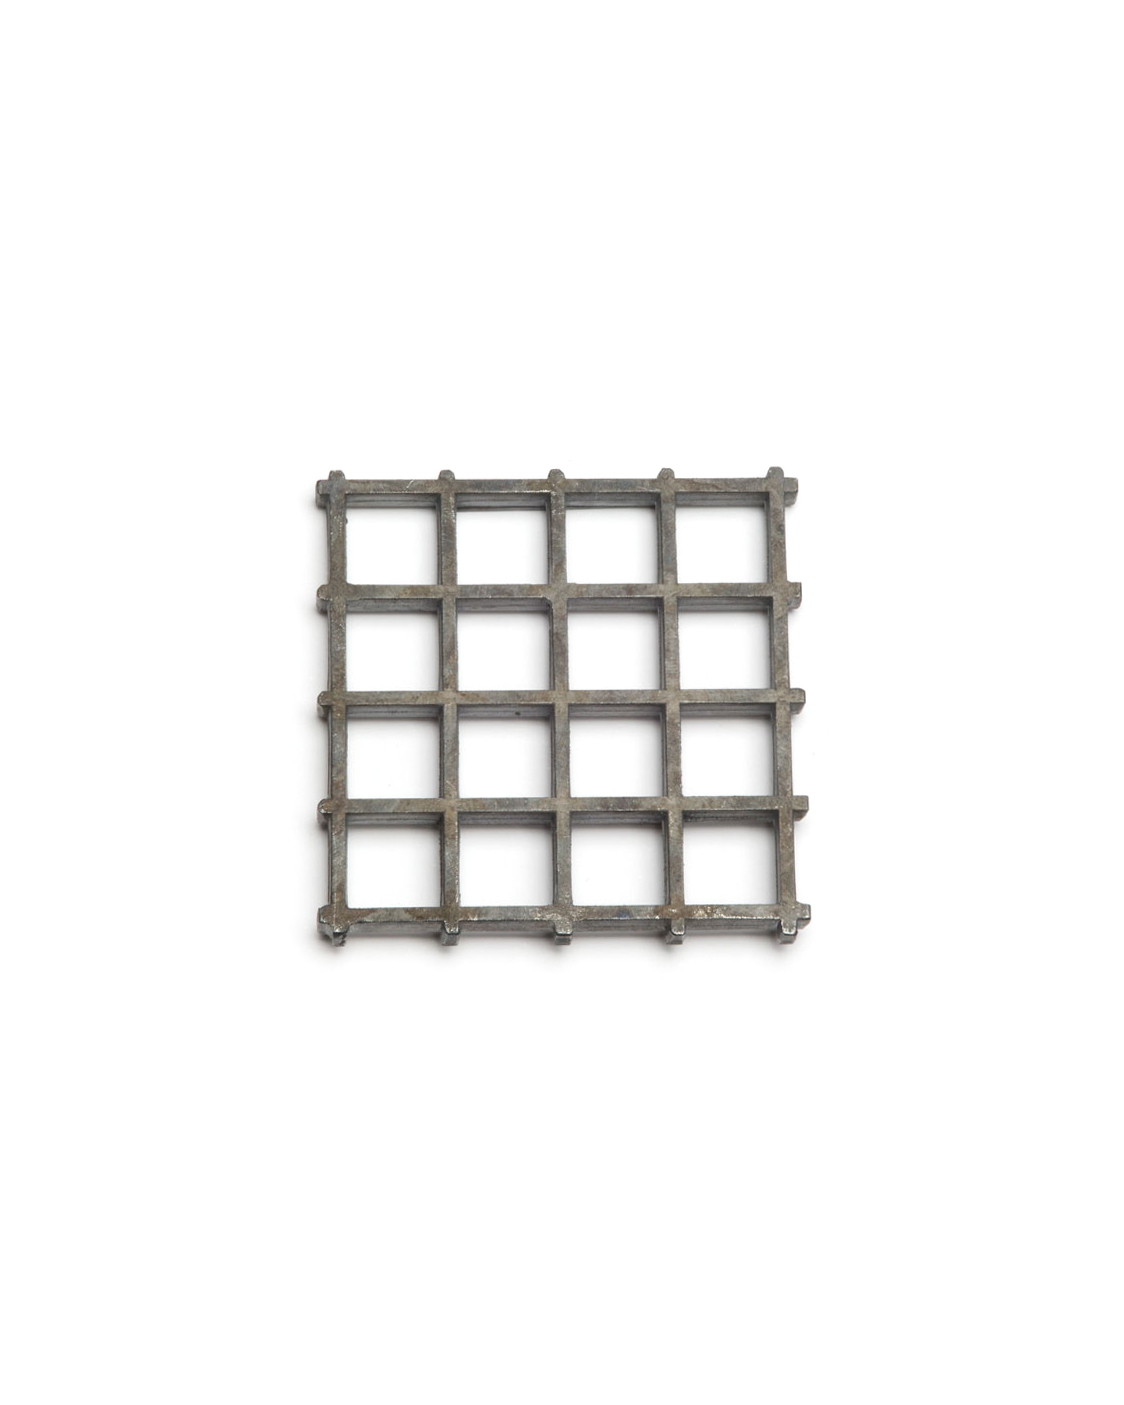 Winfried Krüger, untitled, 2003, brooch; oxidised silver, 60 x 60 mm, €875